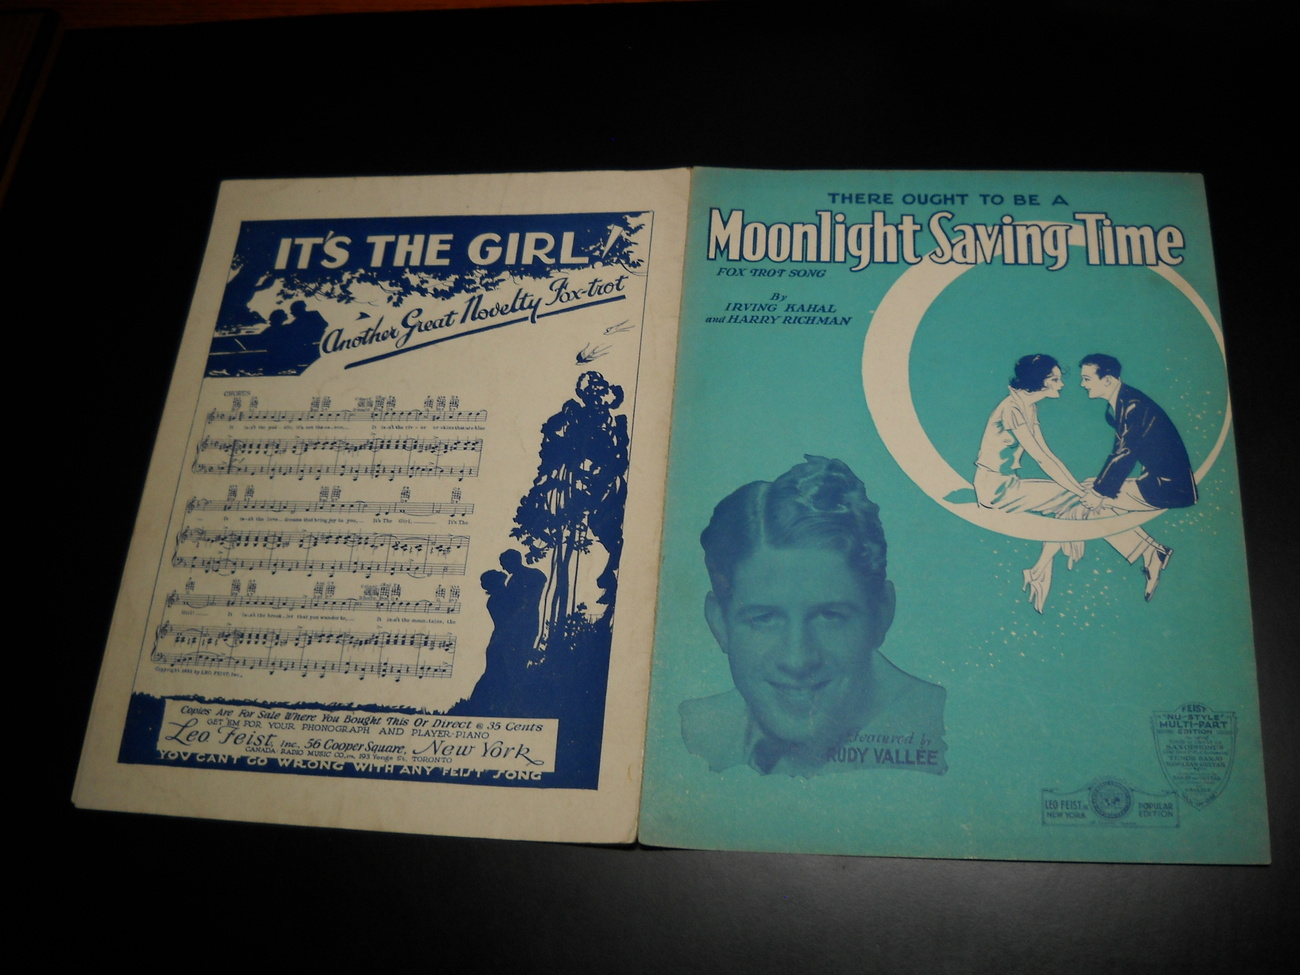 Sheet_music_moonlight_saving_time_rudy_vallee_kahal_richman_1931_leo_feist_04